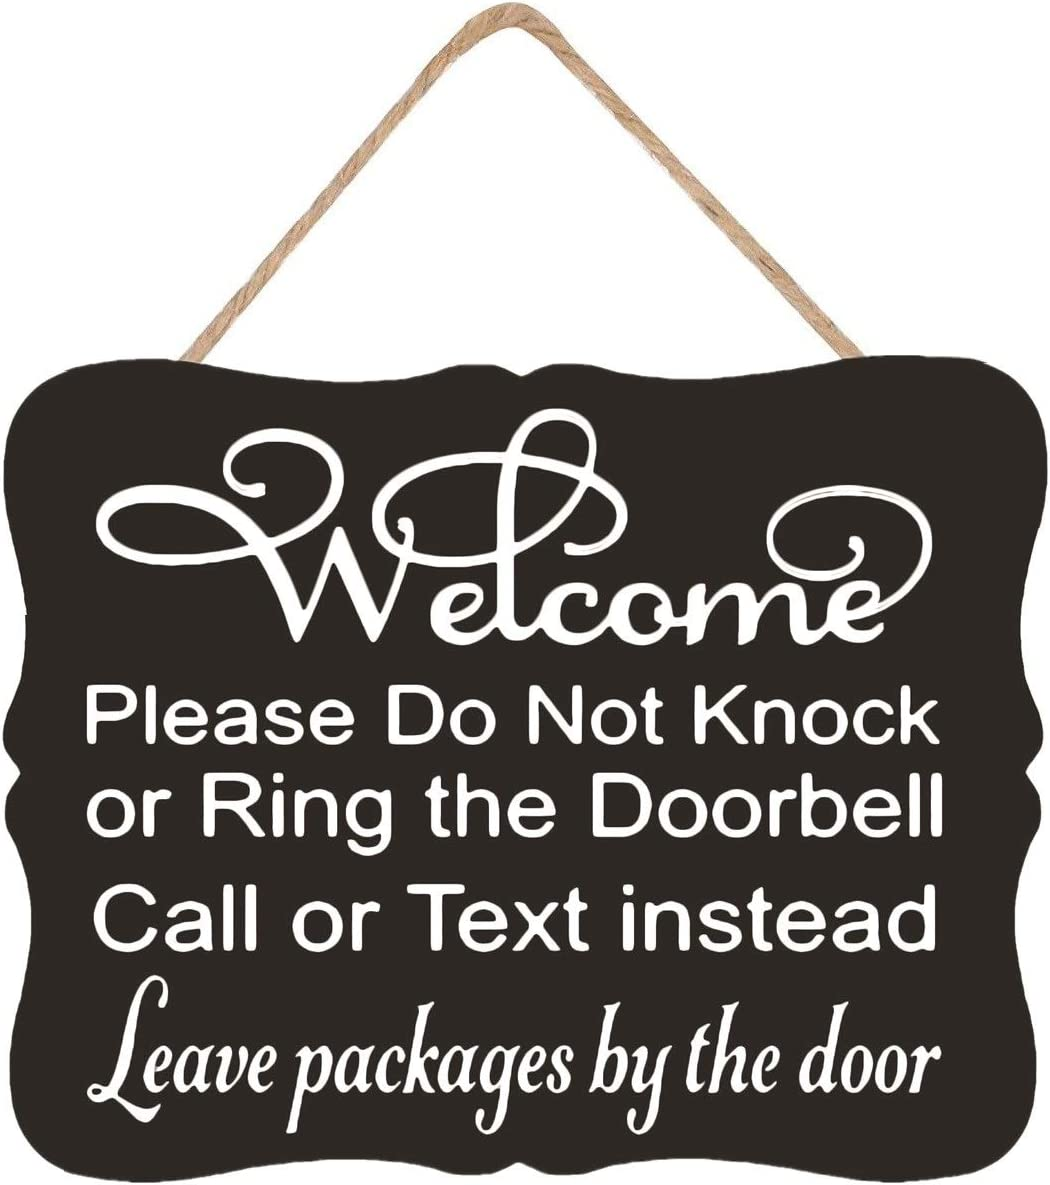 Sunbory Dog Signs, Welcome Sign, Do Not Knock, Outdoor Decor, Do Not Ring Doorbell, Baby Sleeping, Leave Packages, Do Not Knock Sign